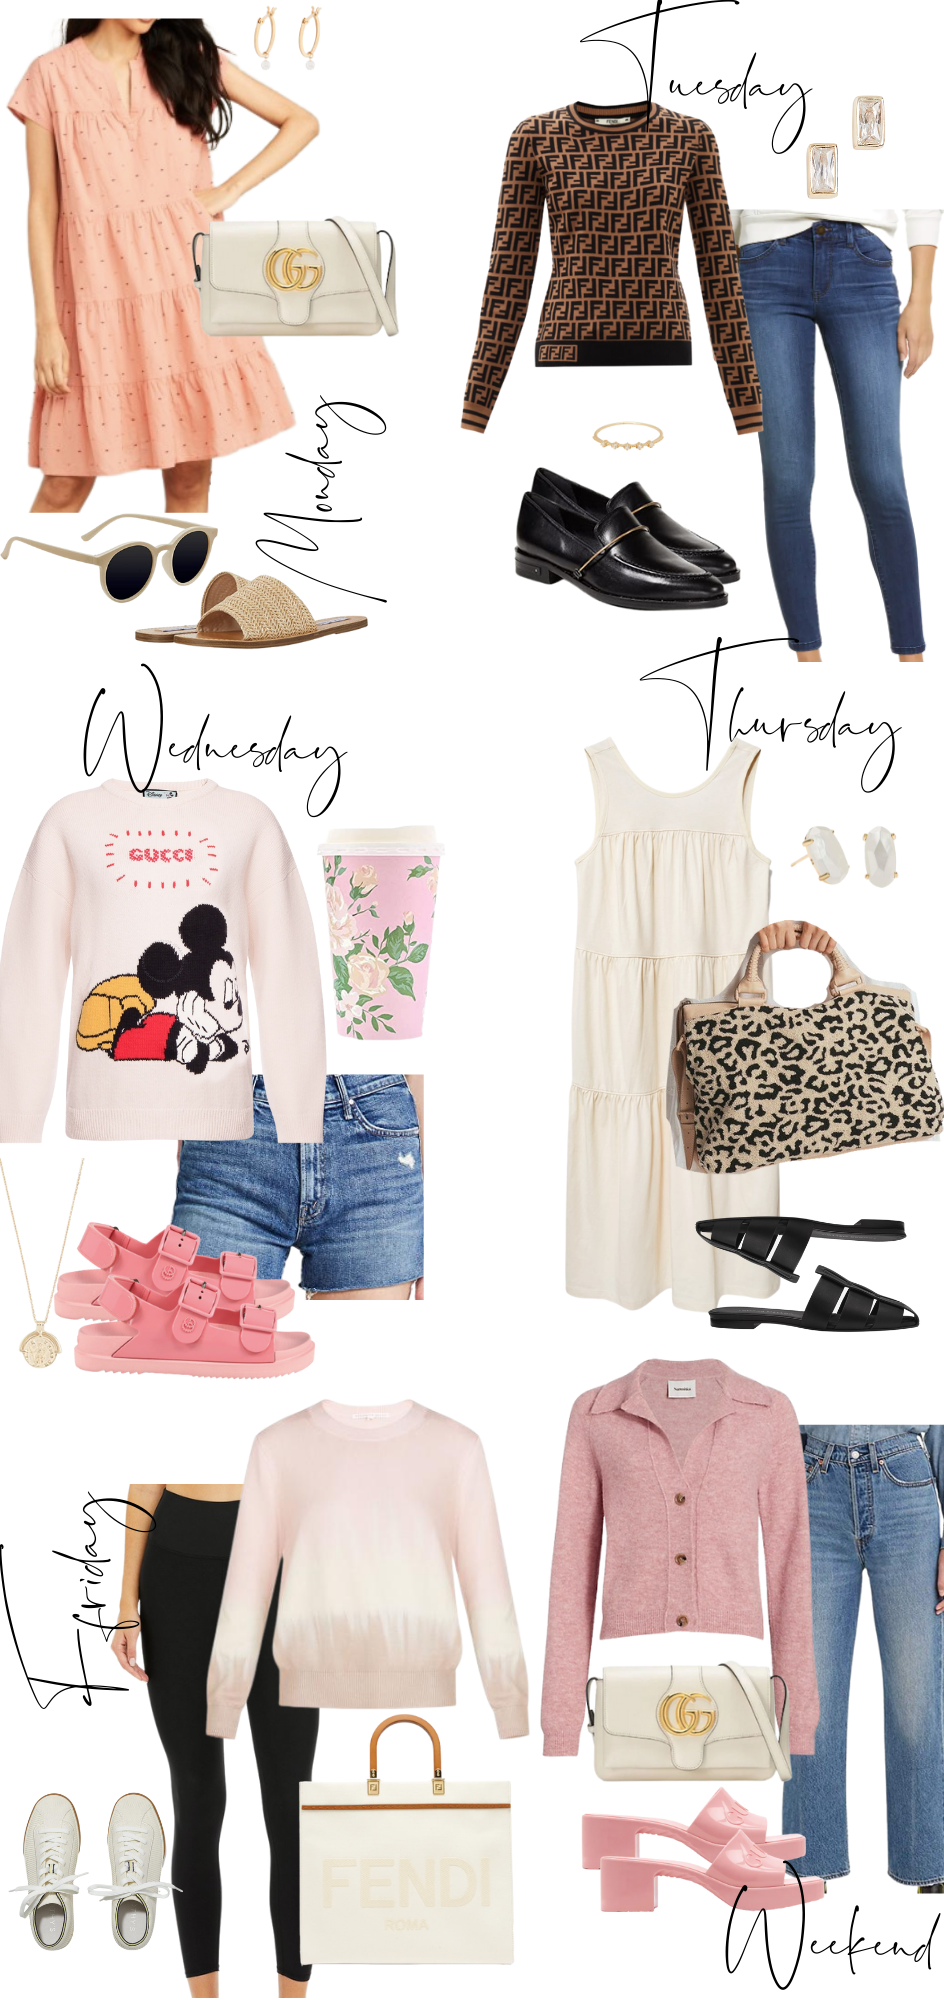 What to Pack by popular Monterey fashion blog, Haute Beauty Guide: collage image of pink sandals, gold coin pendant necklace, black slide mules, cream Gucci purse, Fendi handbag, denim shorts, Mickey Mouse sweater, floral print thermos, Kendra Scott studs, leopard print carpet bag, cream tiered maxi dress, pink and cream tie dye sweatshirt, black leggings, white Nike sneakers, jeans, pink collar sweater, pink block heel slide sandals, Fendi sweater, black loafers, gold and crystal ring, peach and brown dot tiered mini dress, tan frame sunglasses, and woven strap slide sandals.